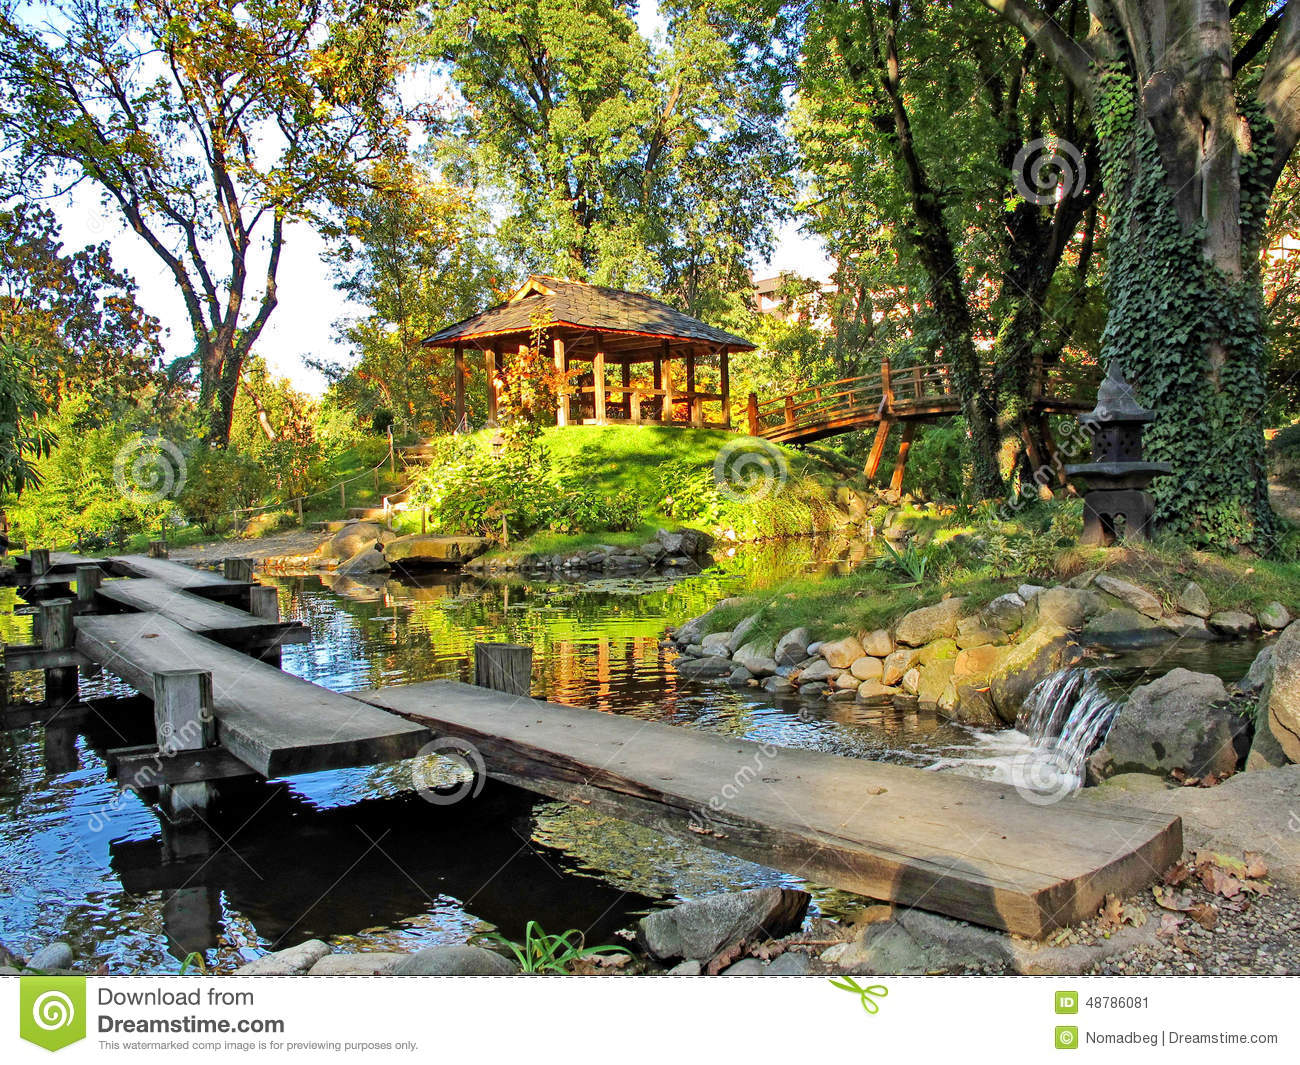 japanese garden with a water pool pavilion and wooden. Black Bedroom Furniture Sets. Home Design Ideas